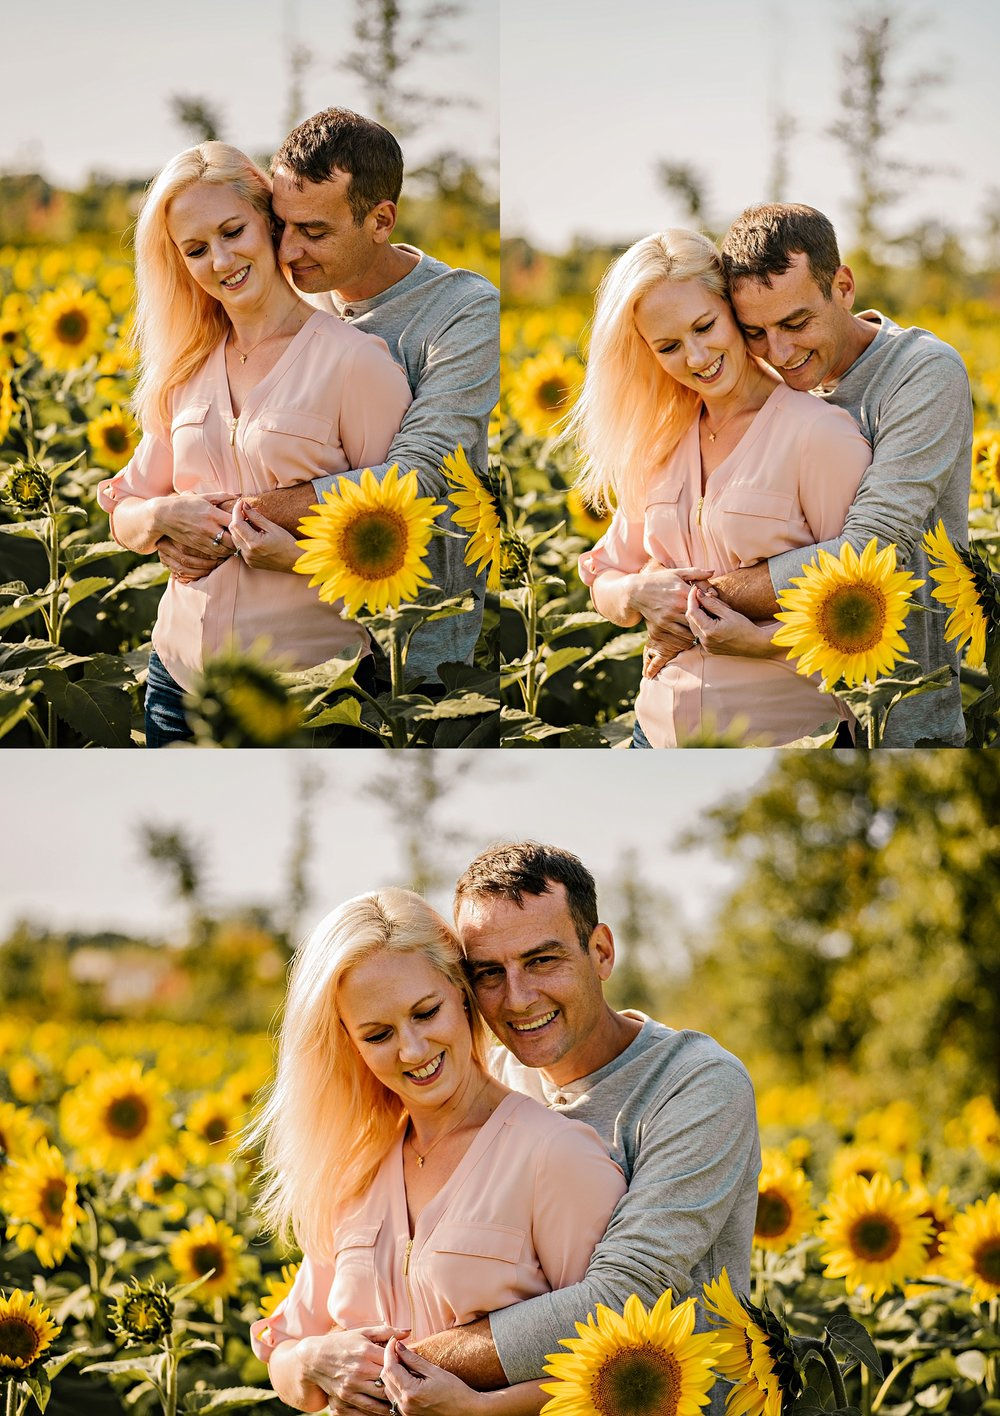 Lori-and-mike-akron-ohio-photographer-lauren-grayson-sunflower-field-session_0004.jpg